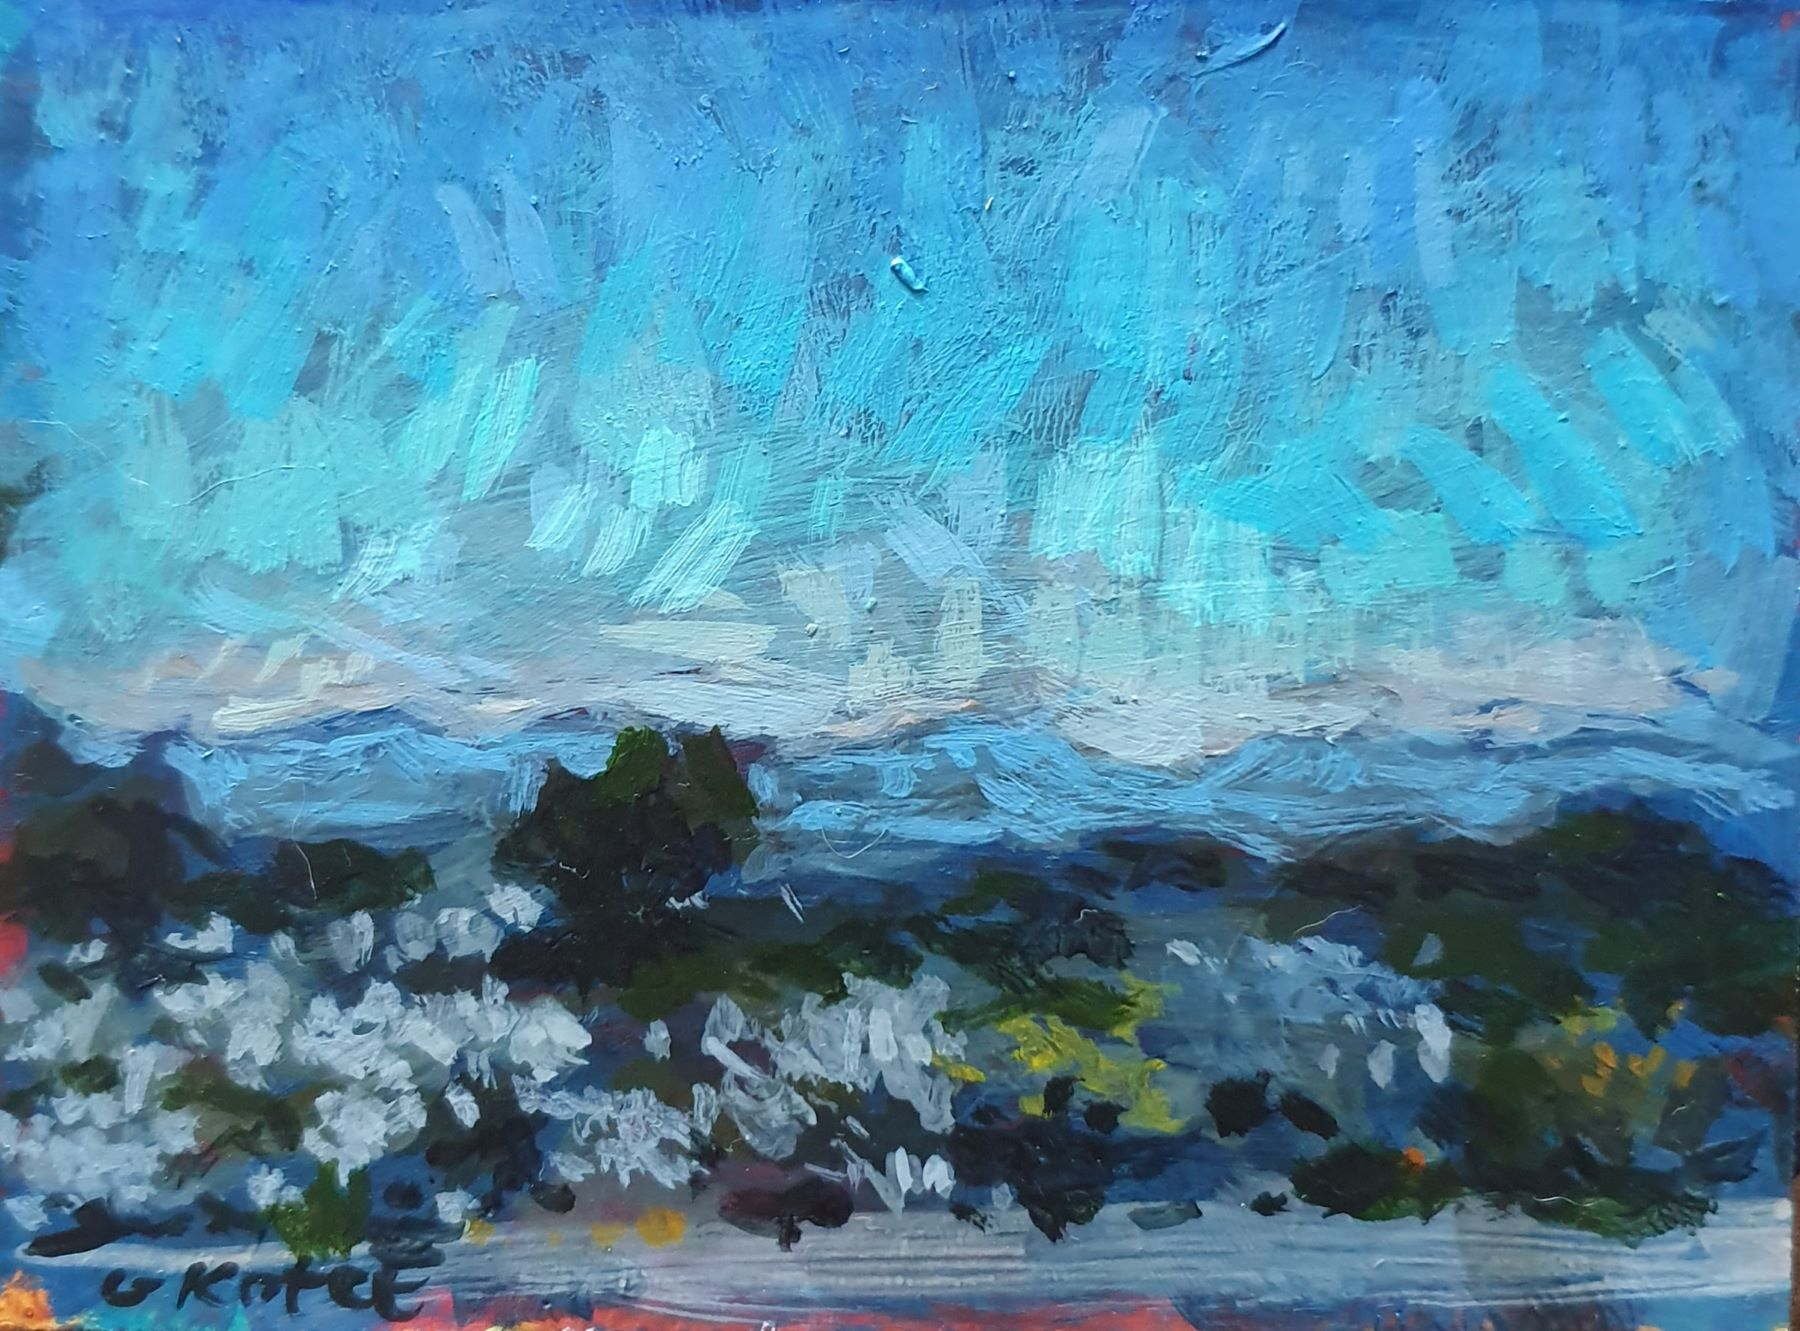 The_sky_that_never_ends_9_x_12_cm_Acrylic_on_board_web